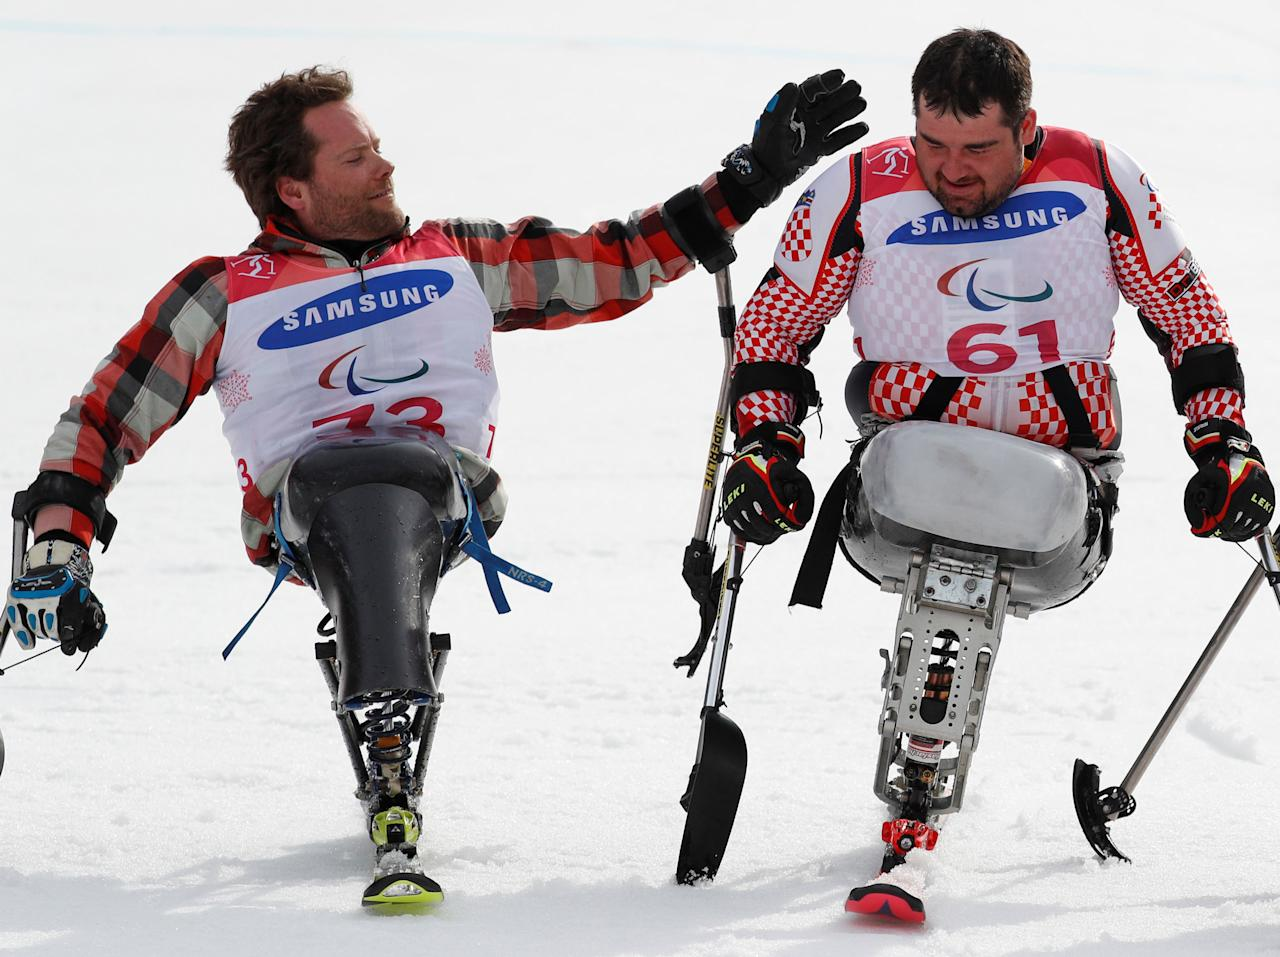 Alpine Skiing - Pyeongchang 2018 Winter Paralympics - Men's Slalom - Sitting - Final - Jeongseon Alpine Centre - Jeongseon, South Korea - March 17, 2018 - Silver medallist Tyler Walker (73) of the U.S. pats gold medallist Dino Sokolovic (61) of Croatia on the back. REUTERS/Paul Hanna